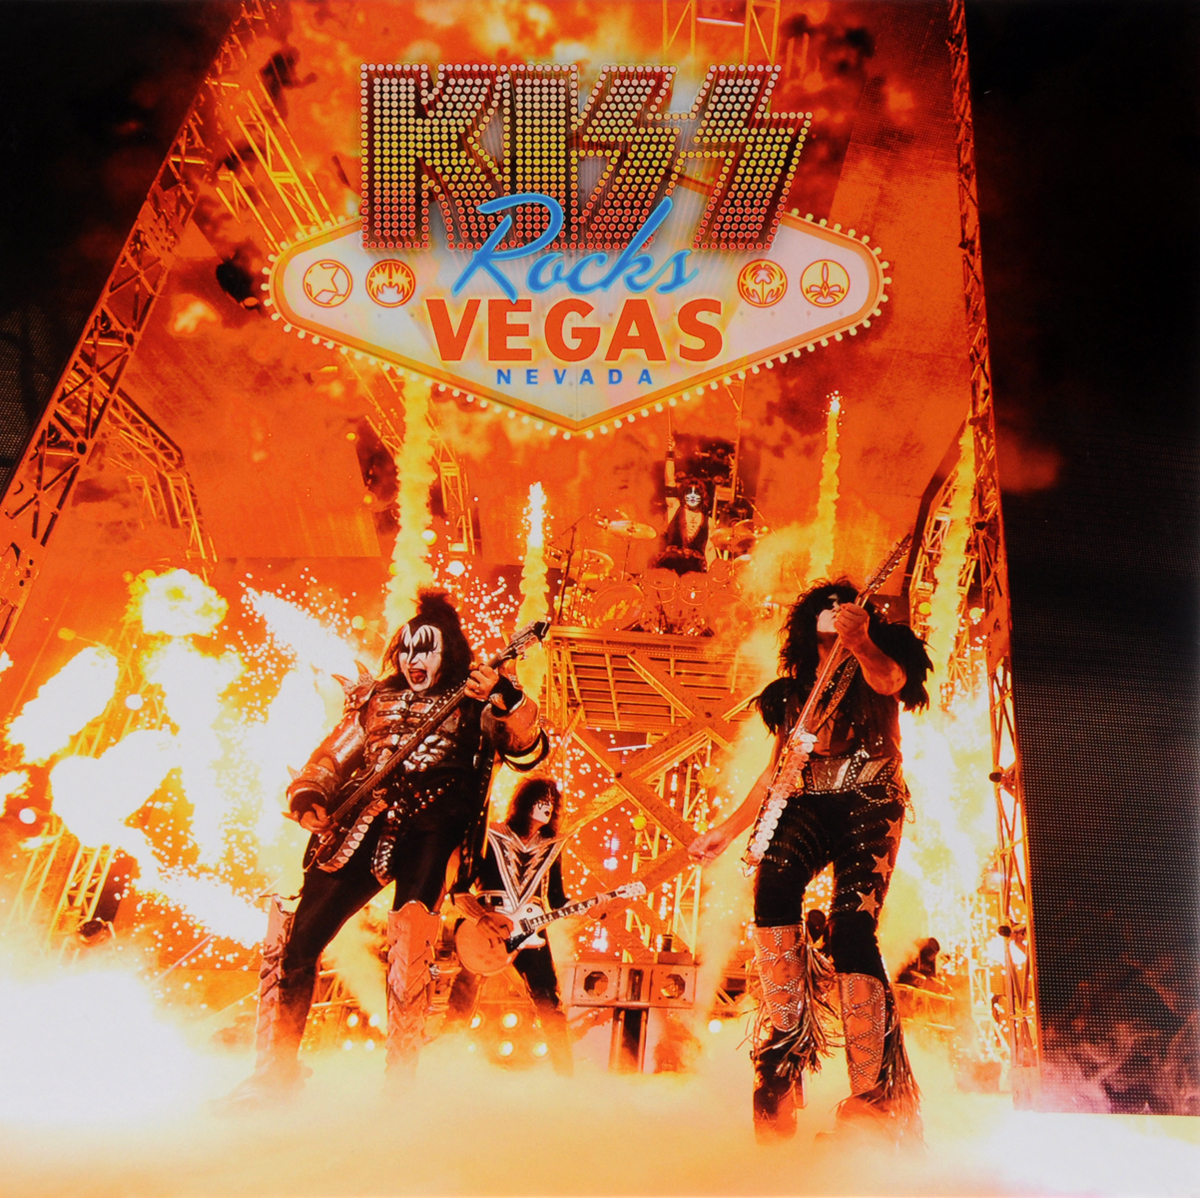 Kiss Kiss. Rocks Vegas (2 CD + DVD + Blu-Ray)